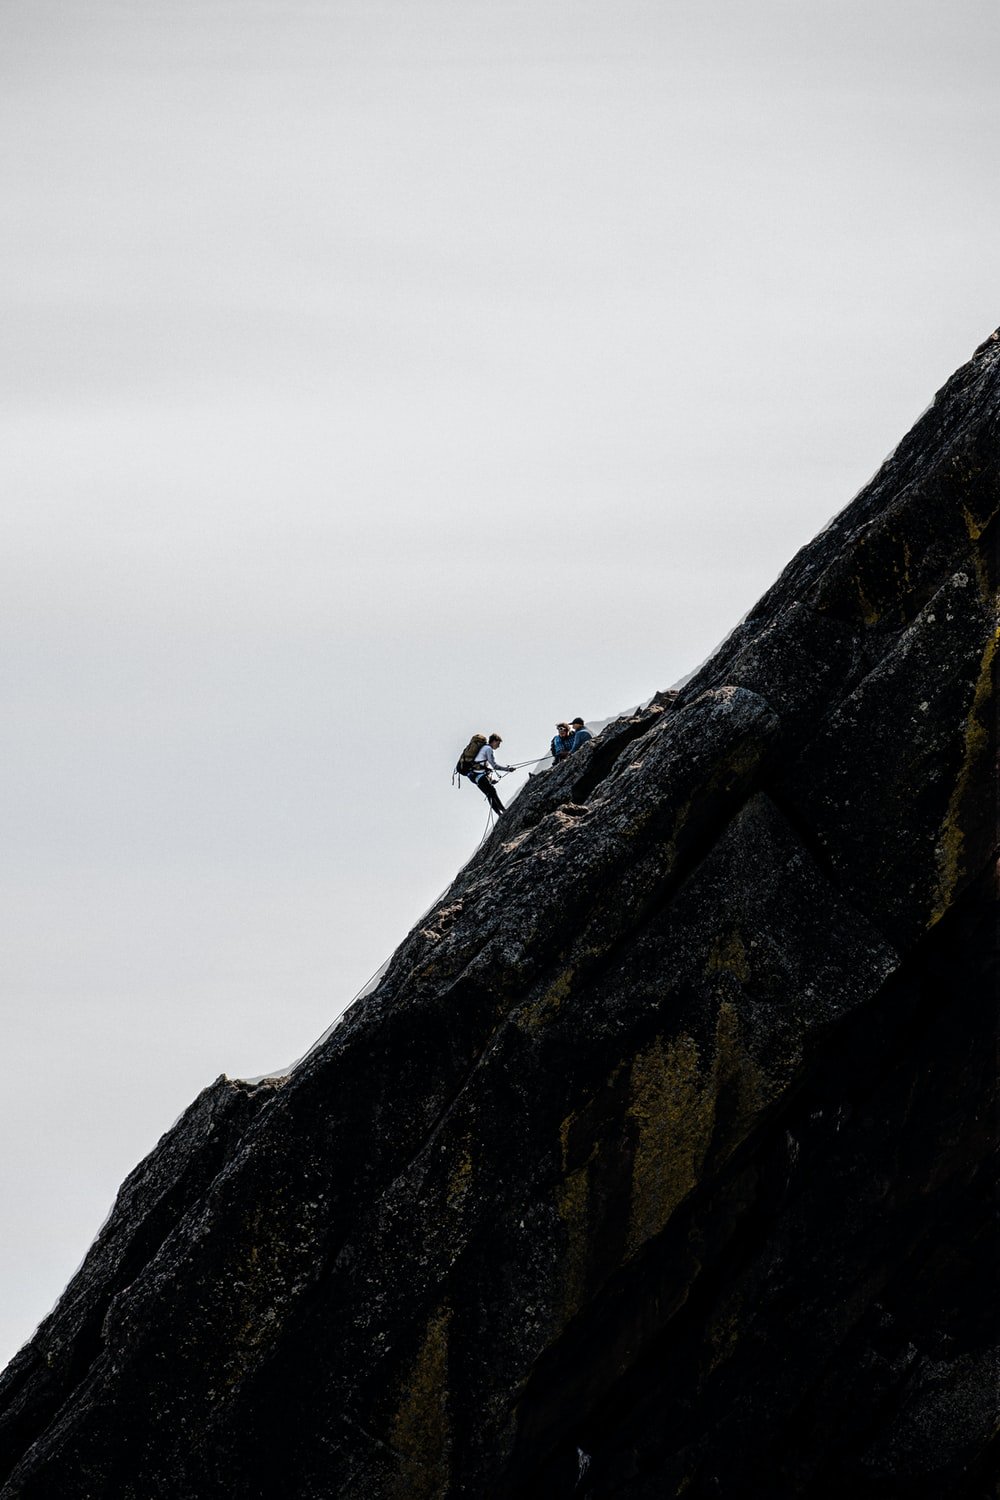 2 person climbing on rocky mountain during daytime